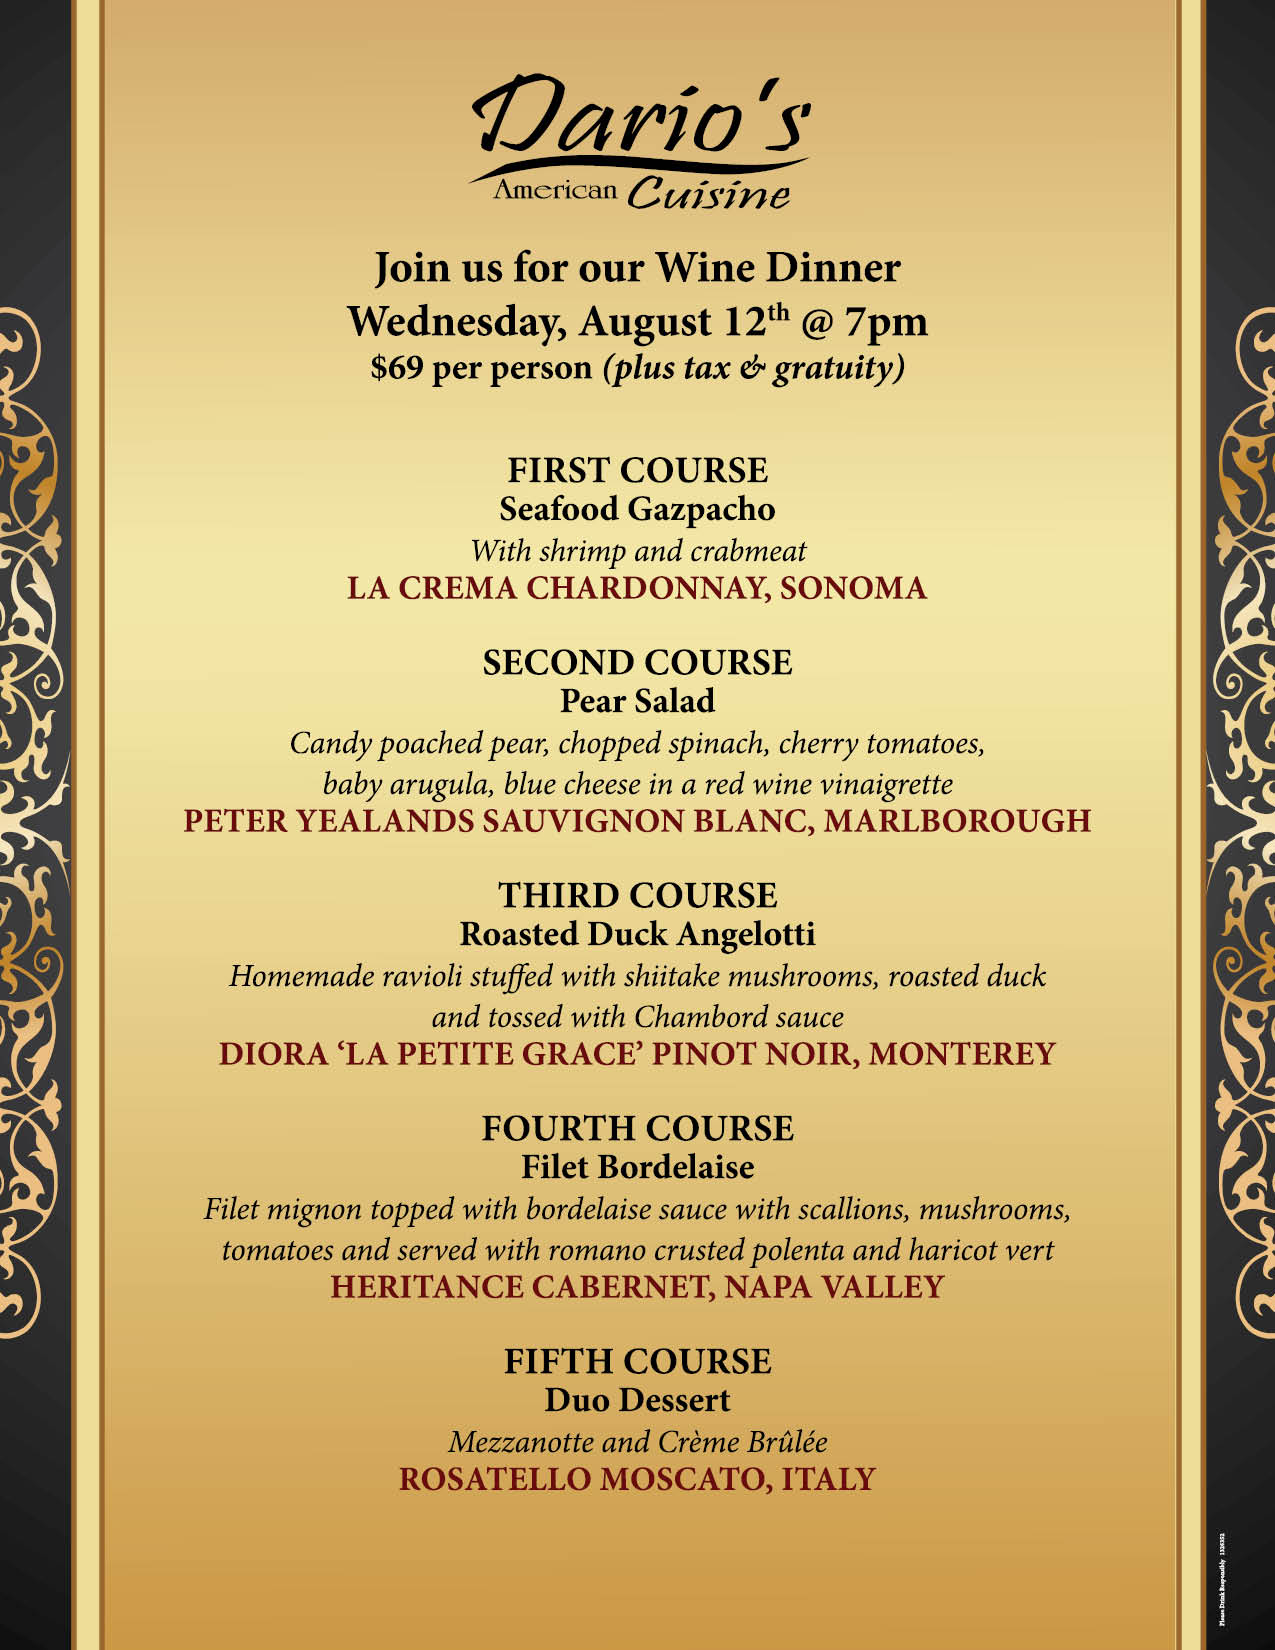 Join us for our August Wine Dinner at Dario's!!